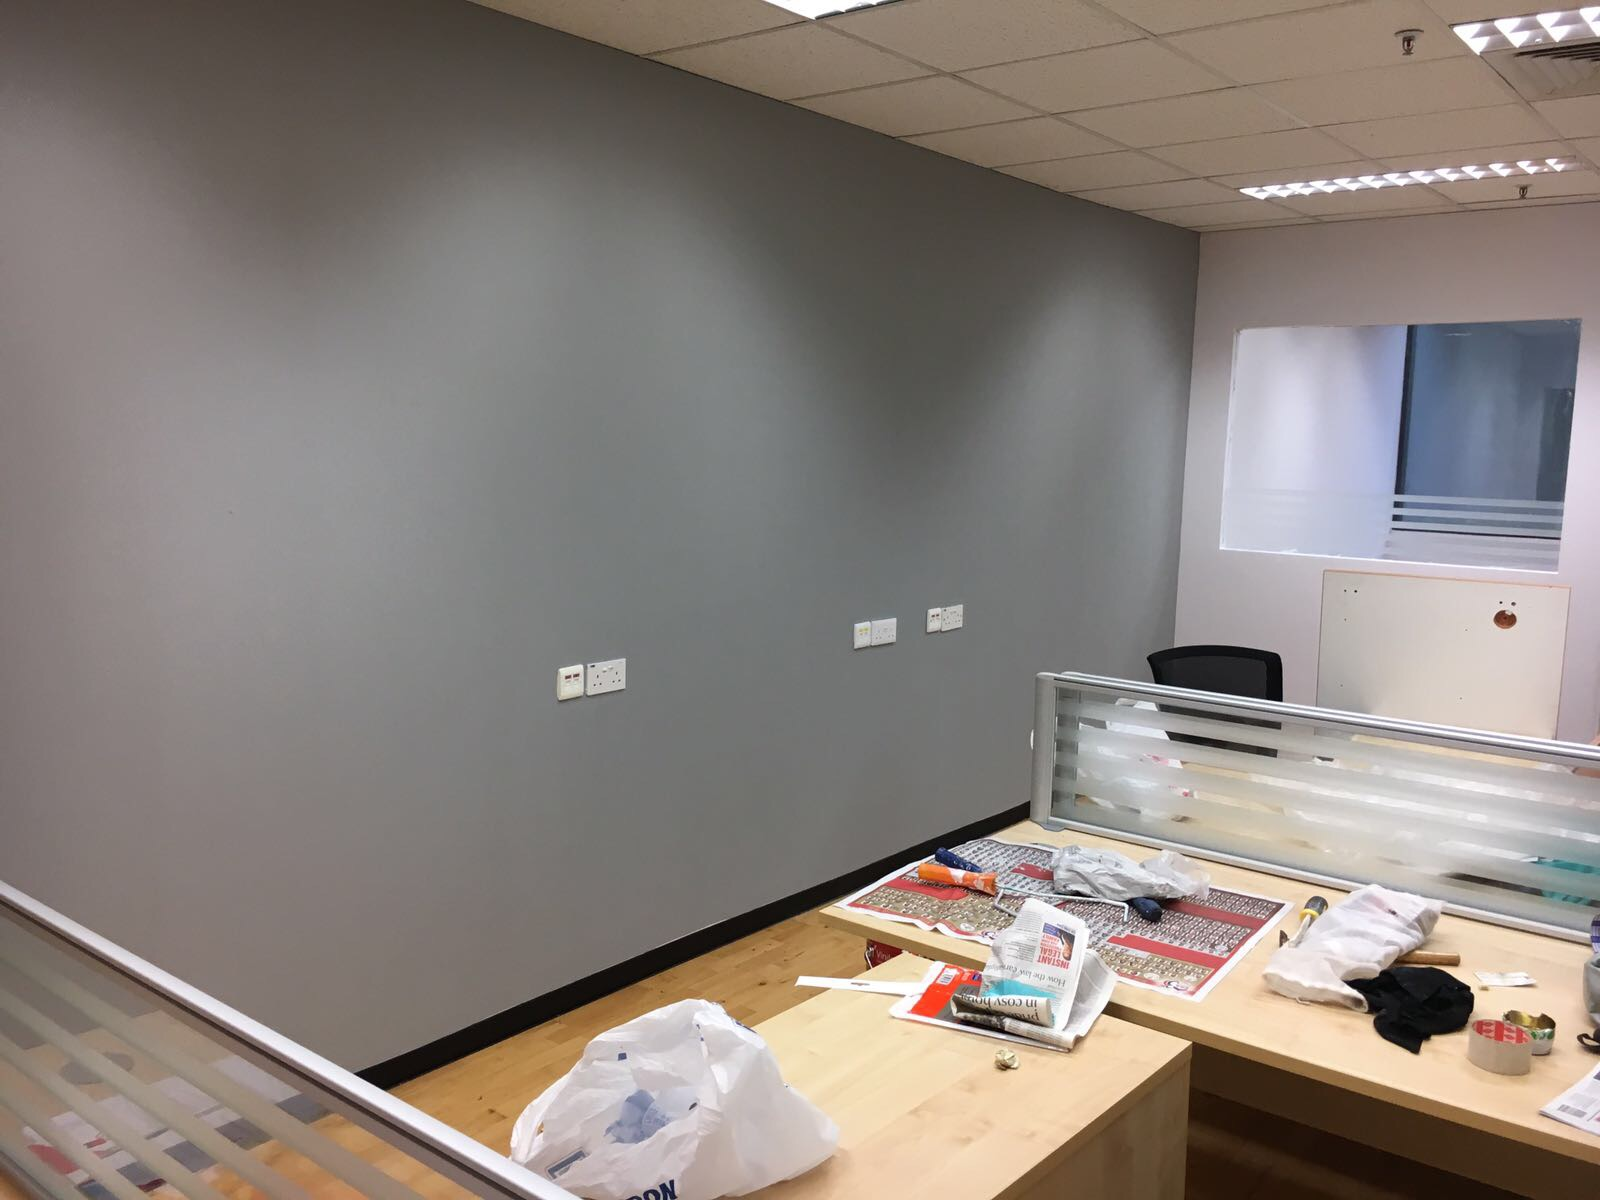 Wall Painting Service Singapore